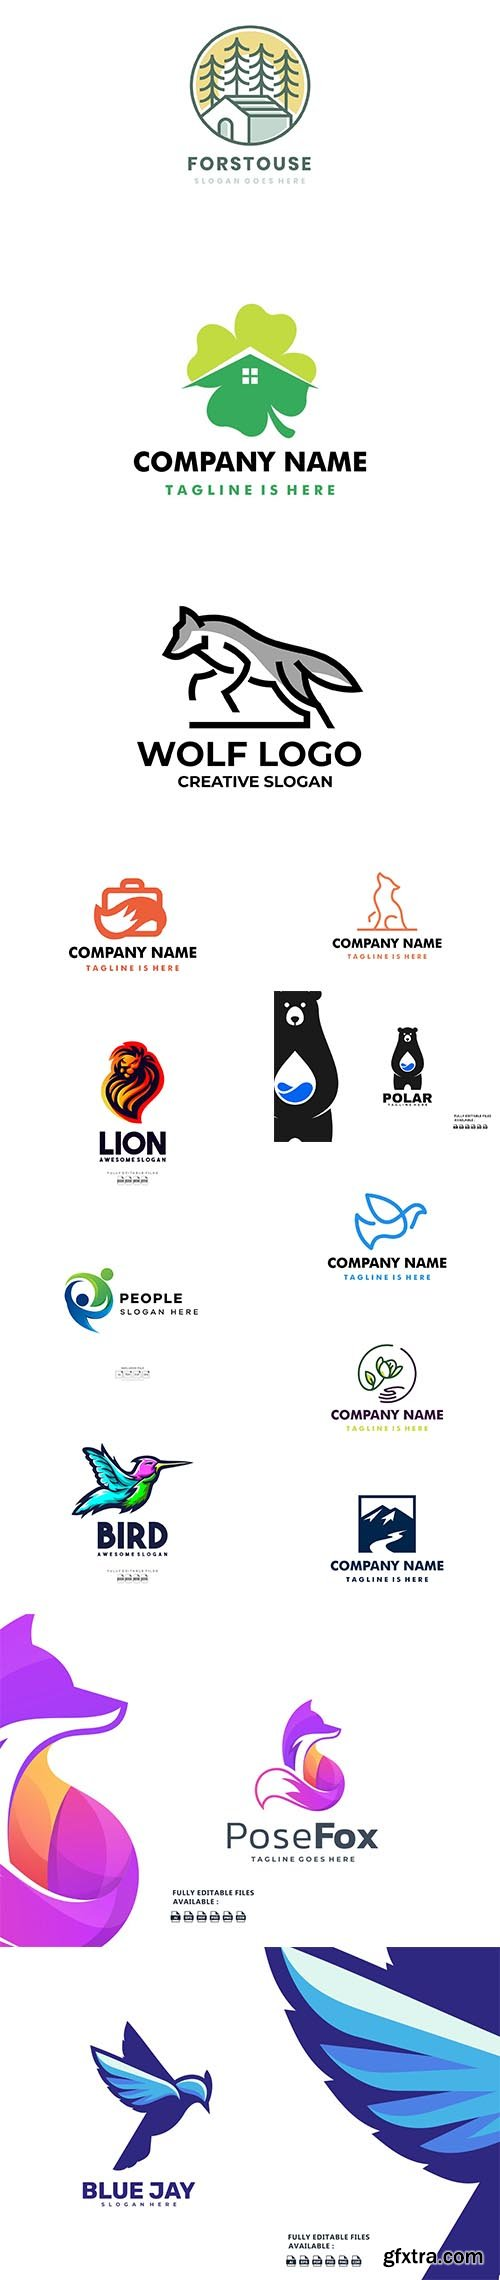 Colorful logo collection 2021